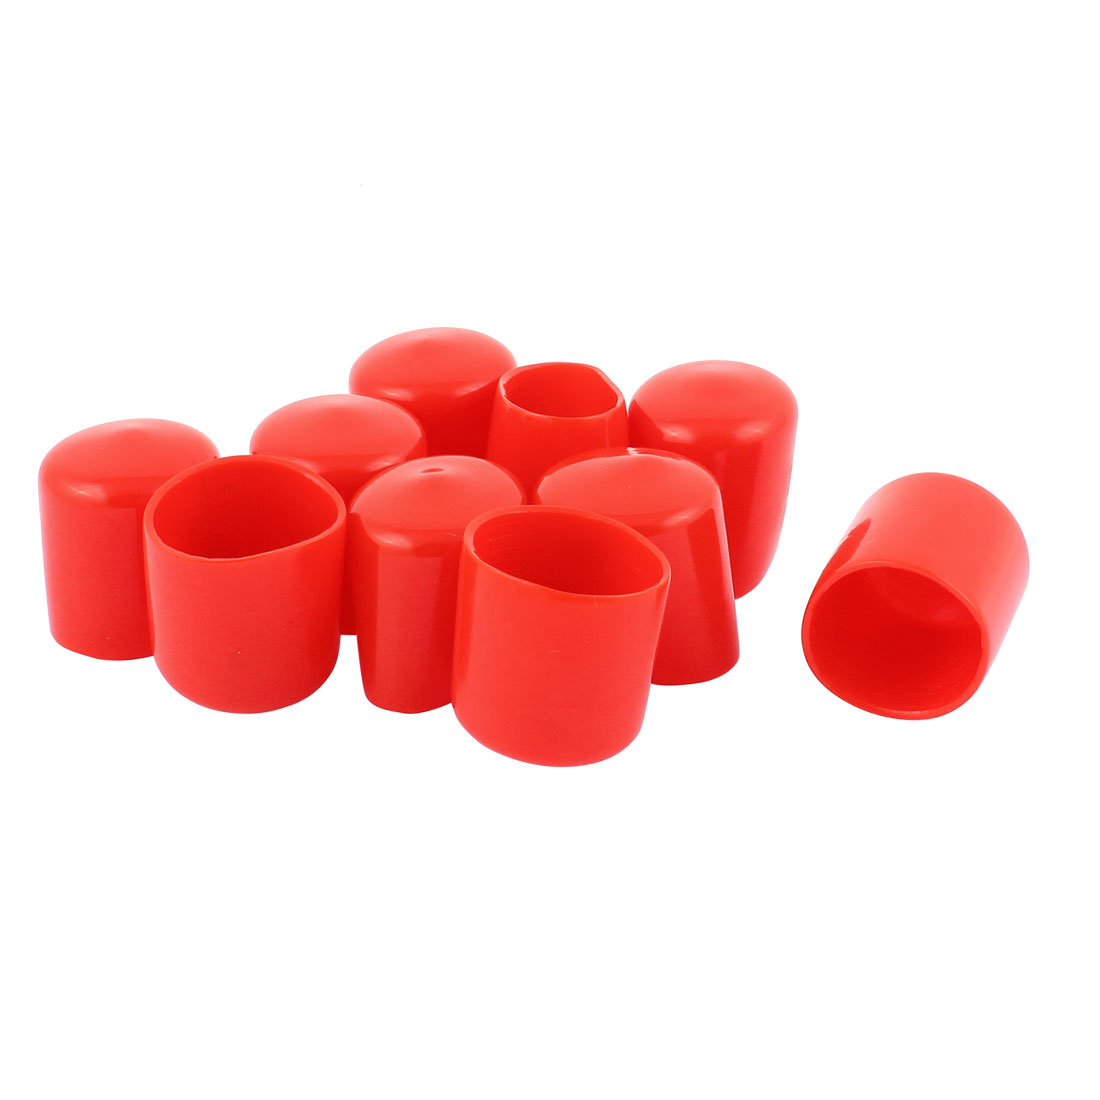 10pcs 27mm Inner Dia Vinyl End Cap Wire Cable Tube Cover Protector